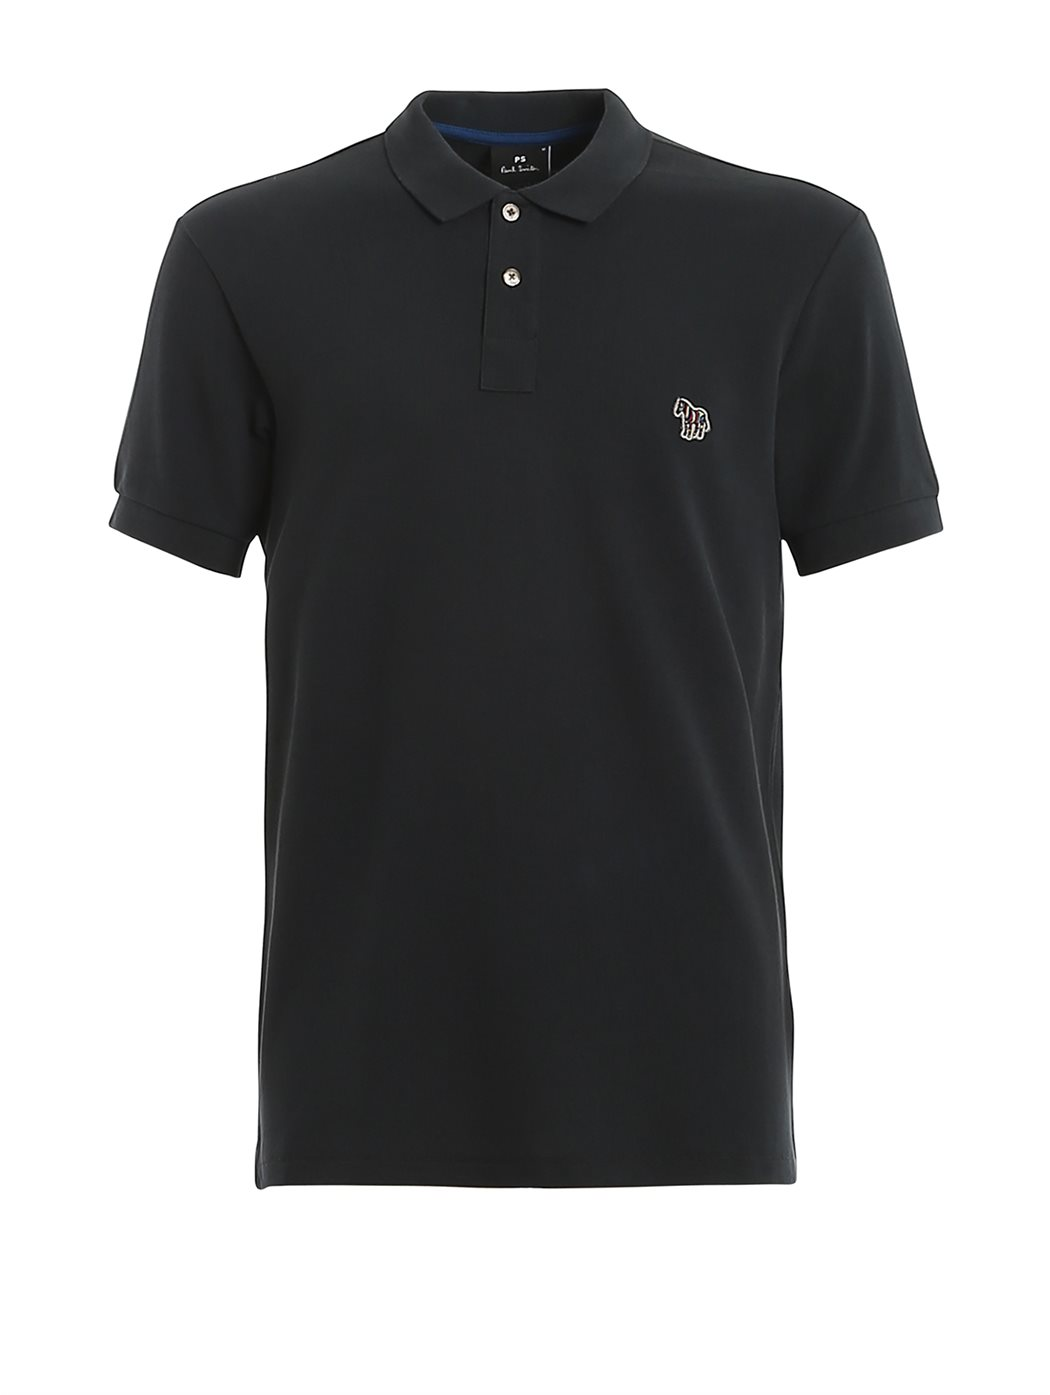 PAUL SMITH M2R-534LZ 78-BK-ME POLO